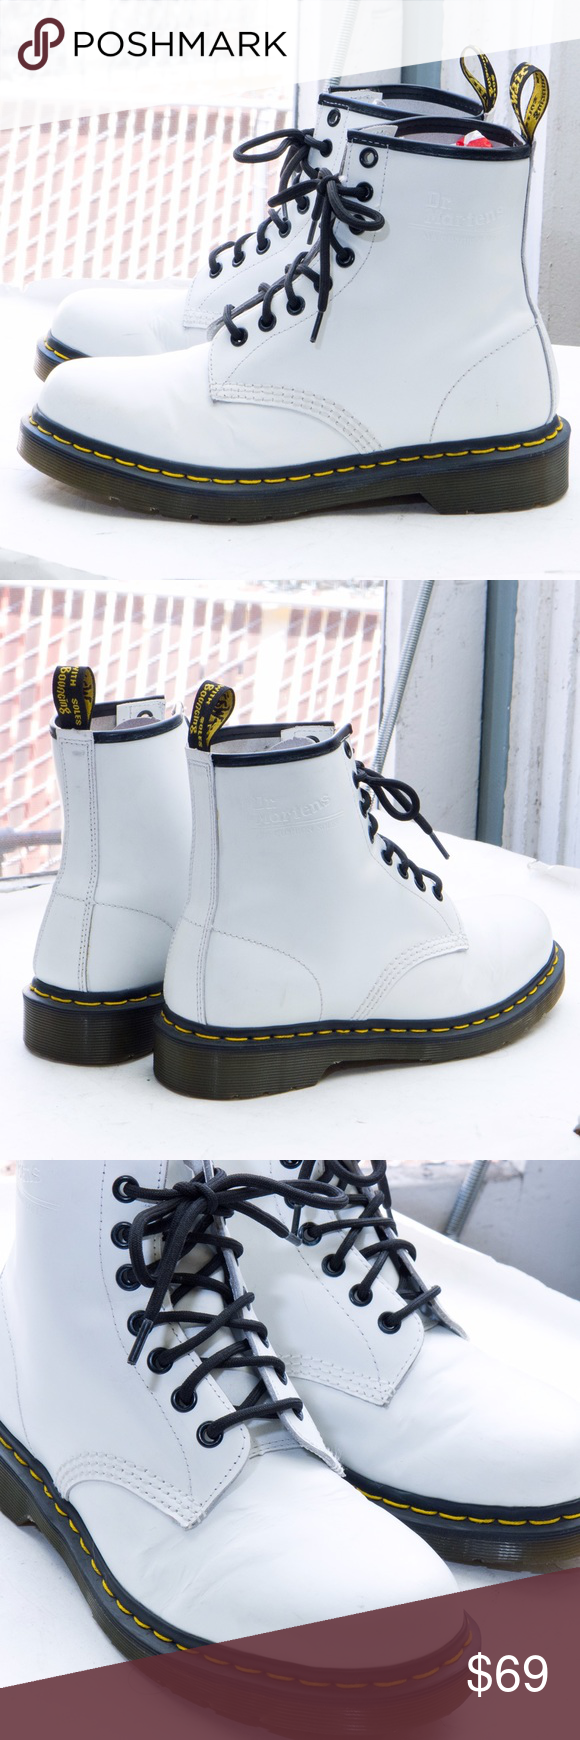 Dr. Martens 1460 smooth boot - 8 eye combat The original boot you think of 55954993c95